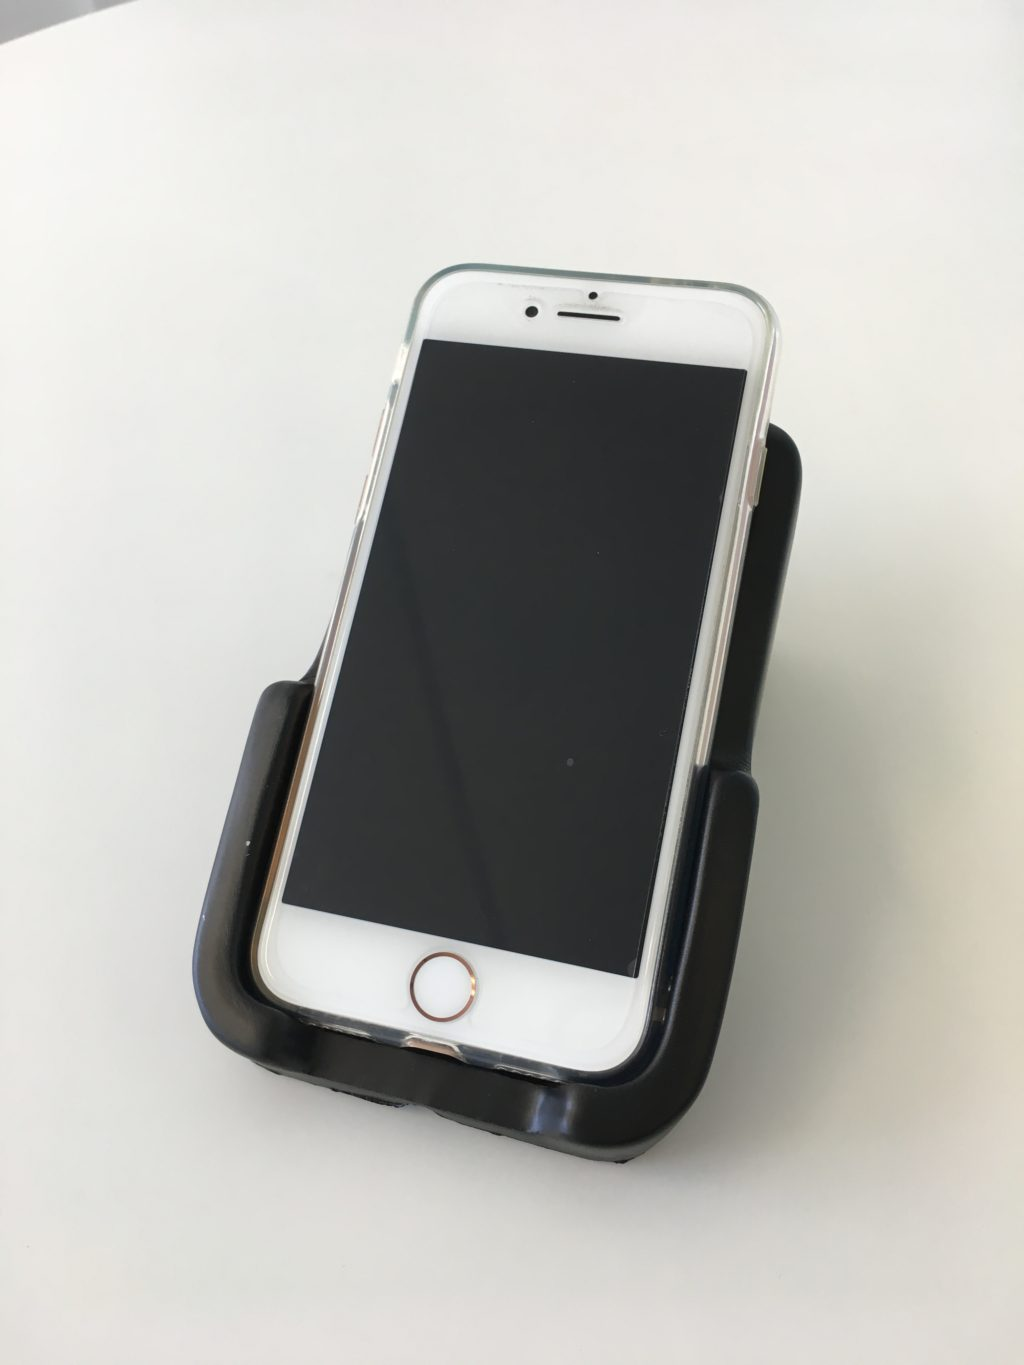 iHold – Smart Phone holder